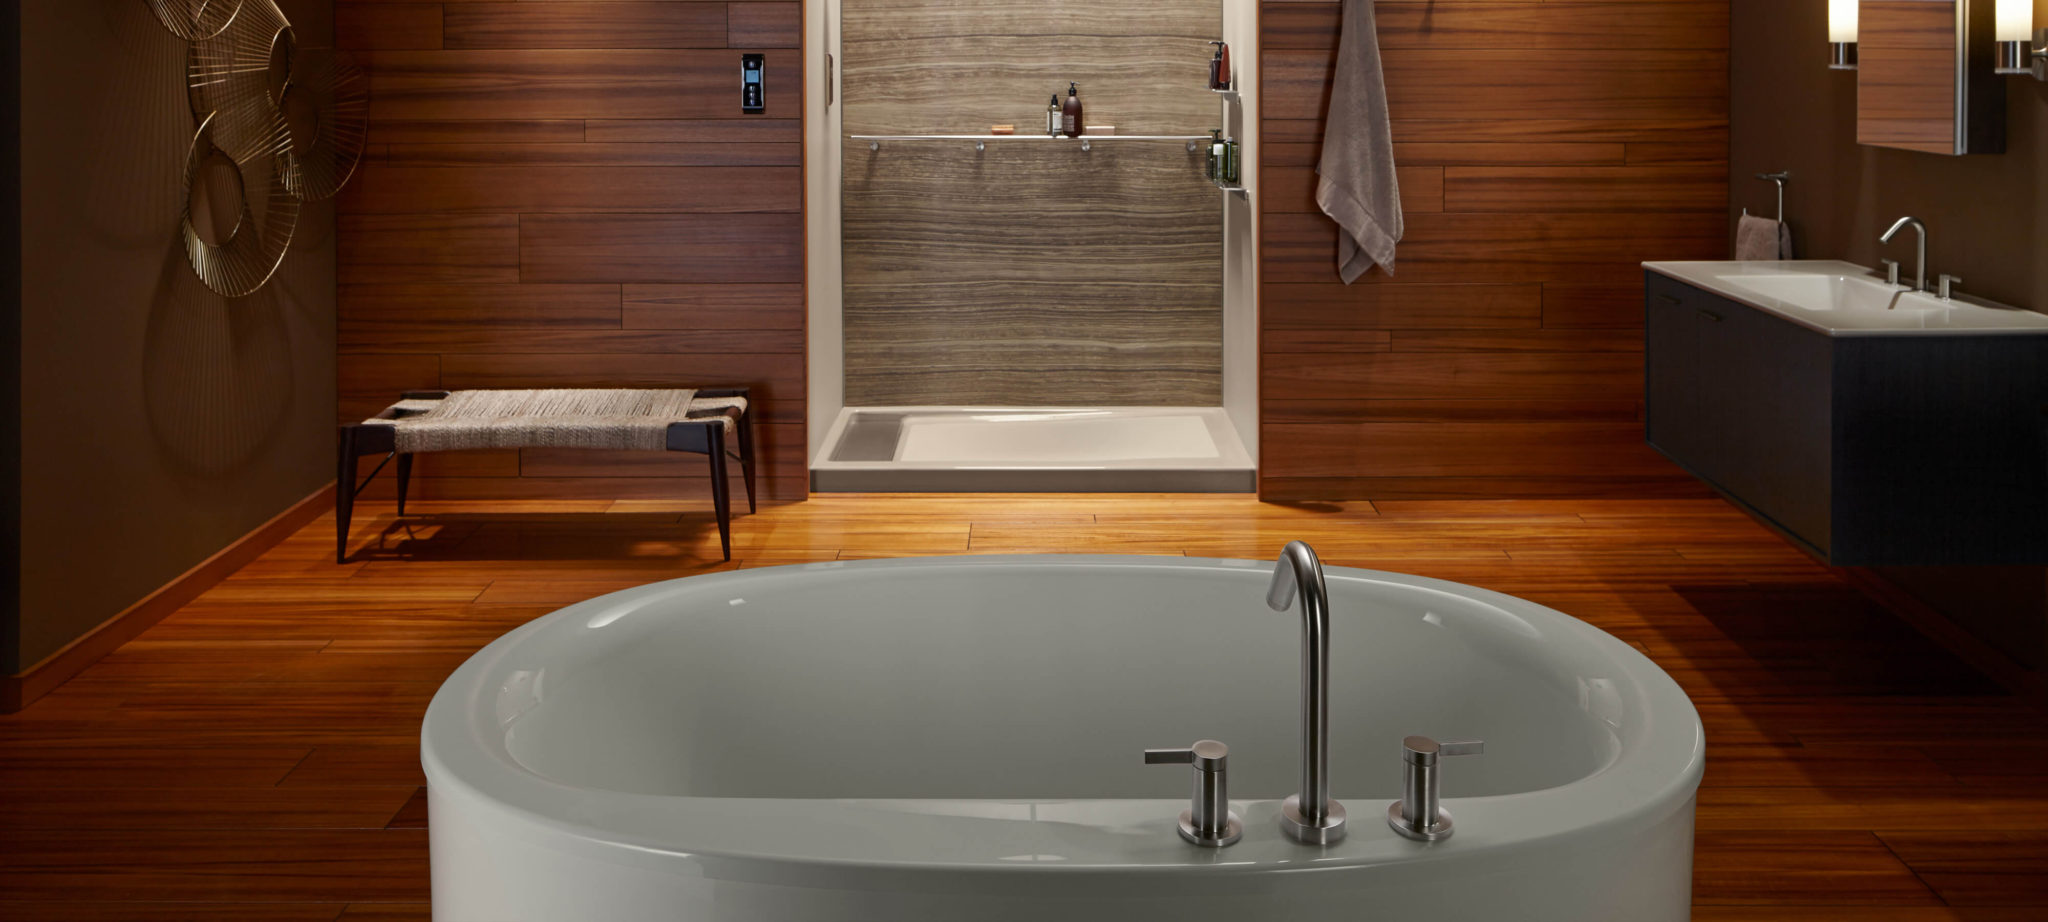 Kohler - Brown bathroom